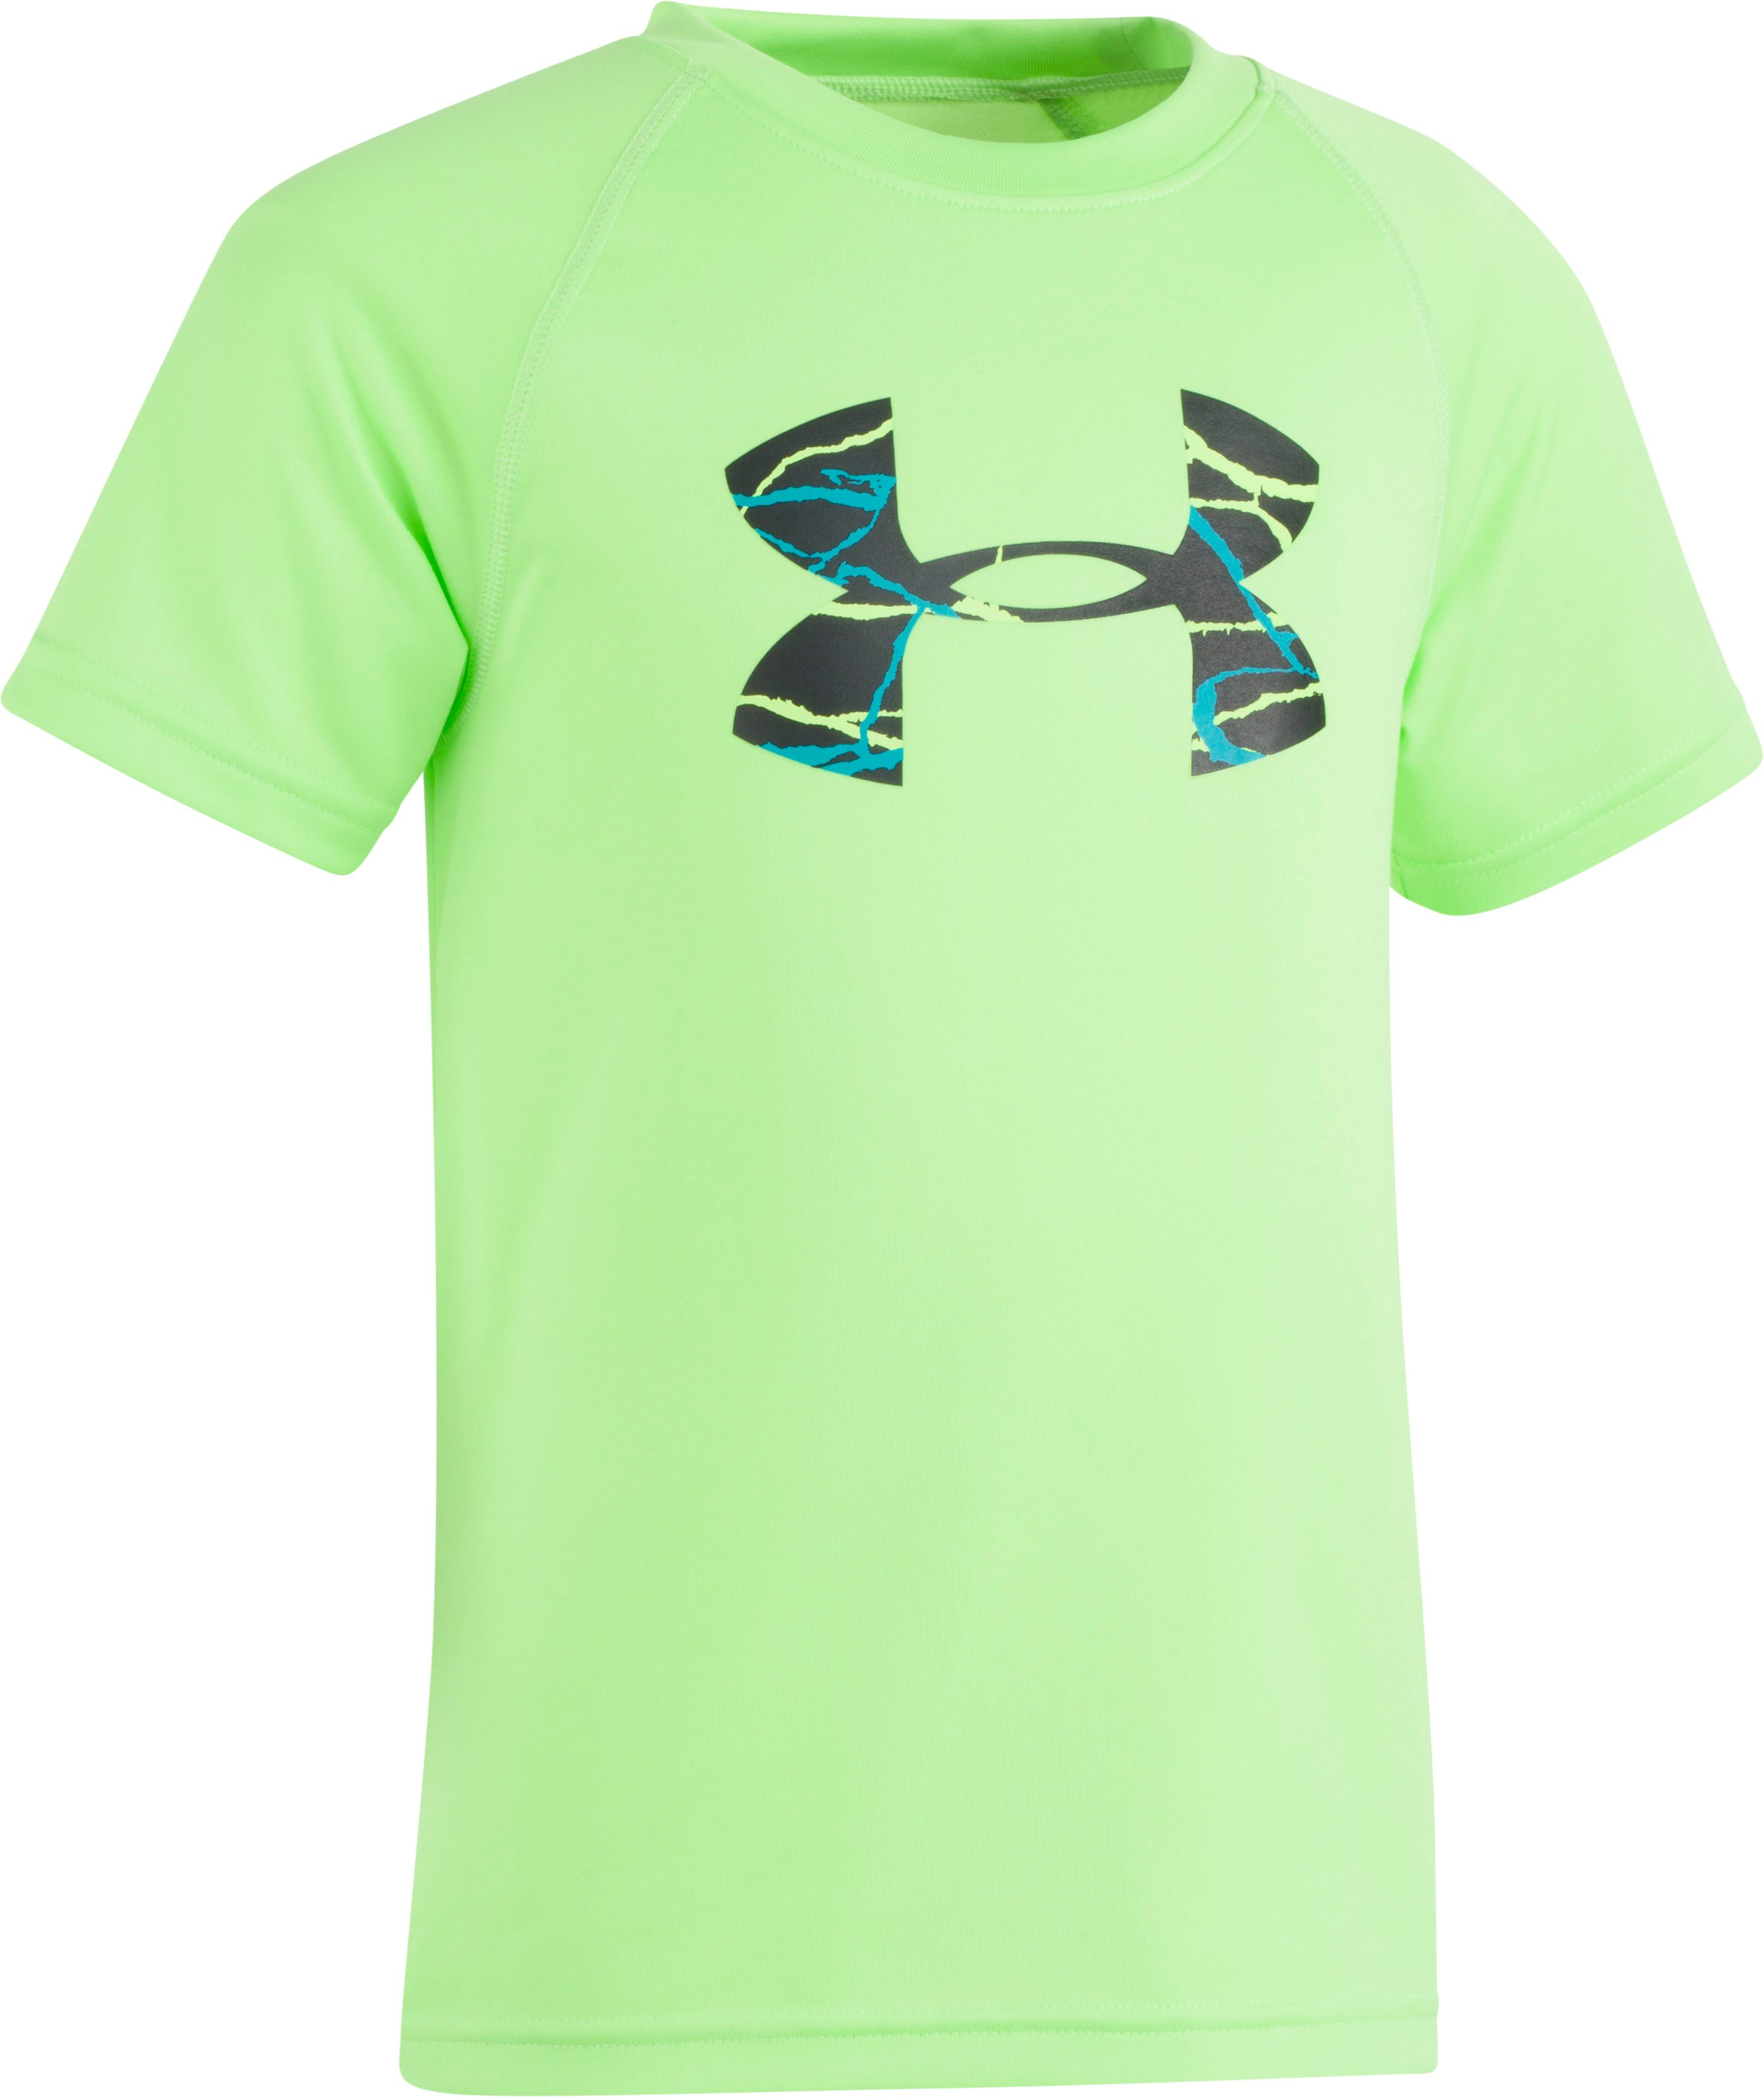 Boys' Pre-School UA Voltage Big Logo T-Shirt, Quirky Lime